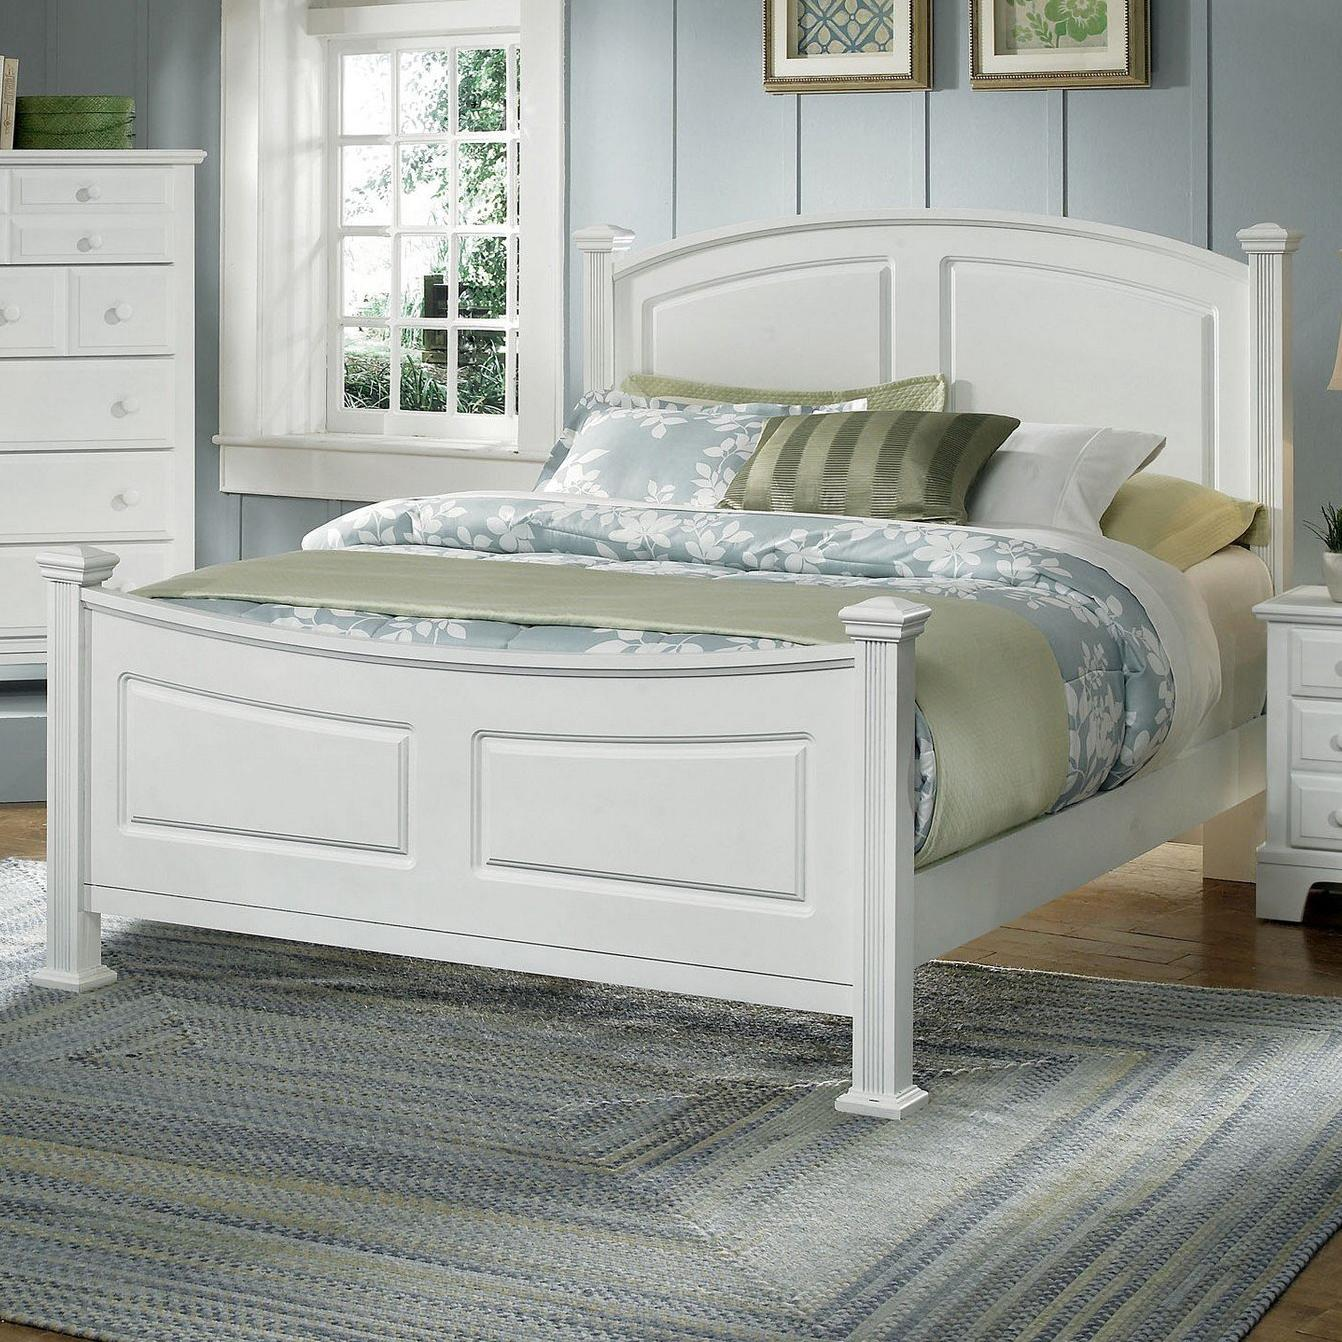 Vaughan Bassett Hamilton Franklin Queen Panel Bed - Item Number: BB6-558+855+922